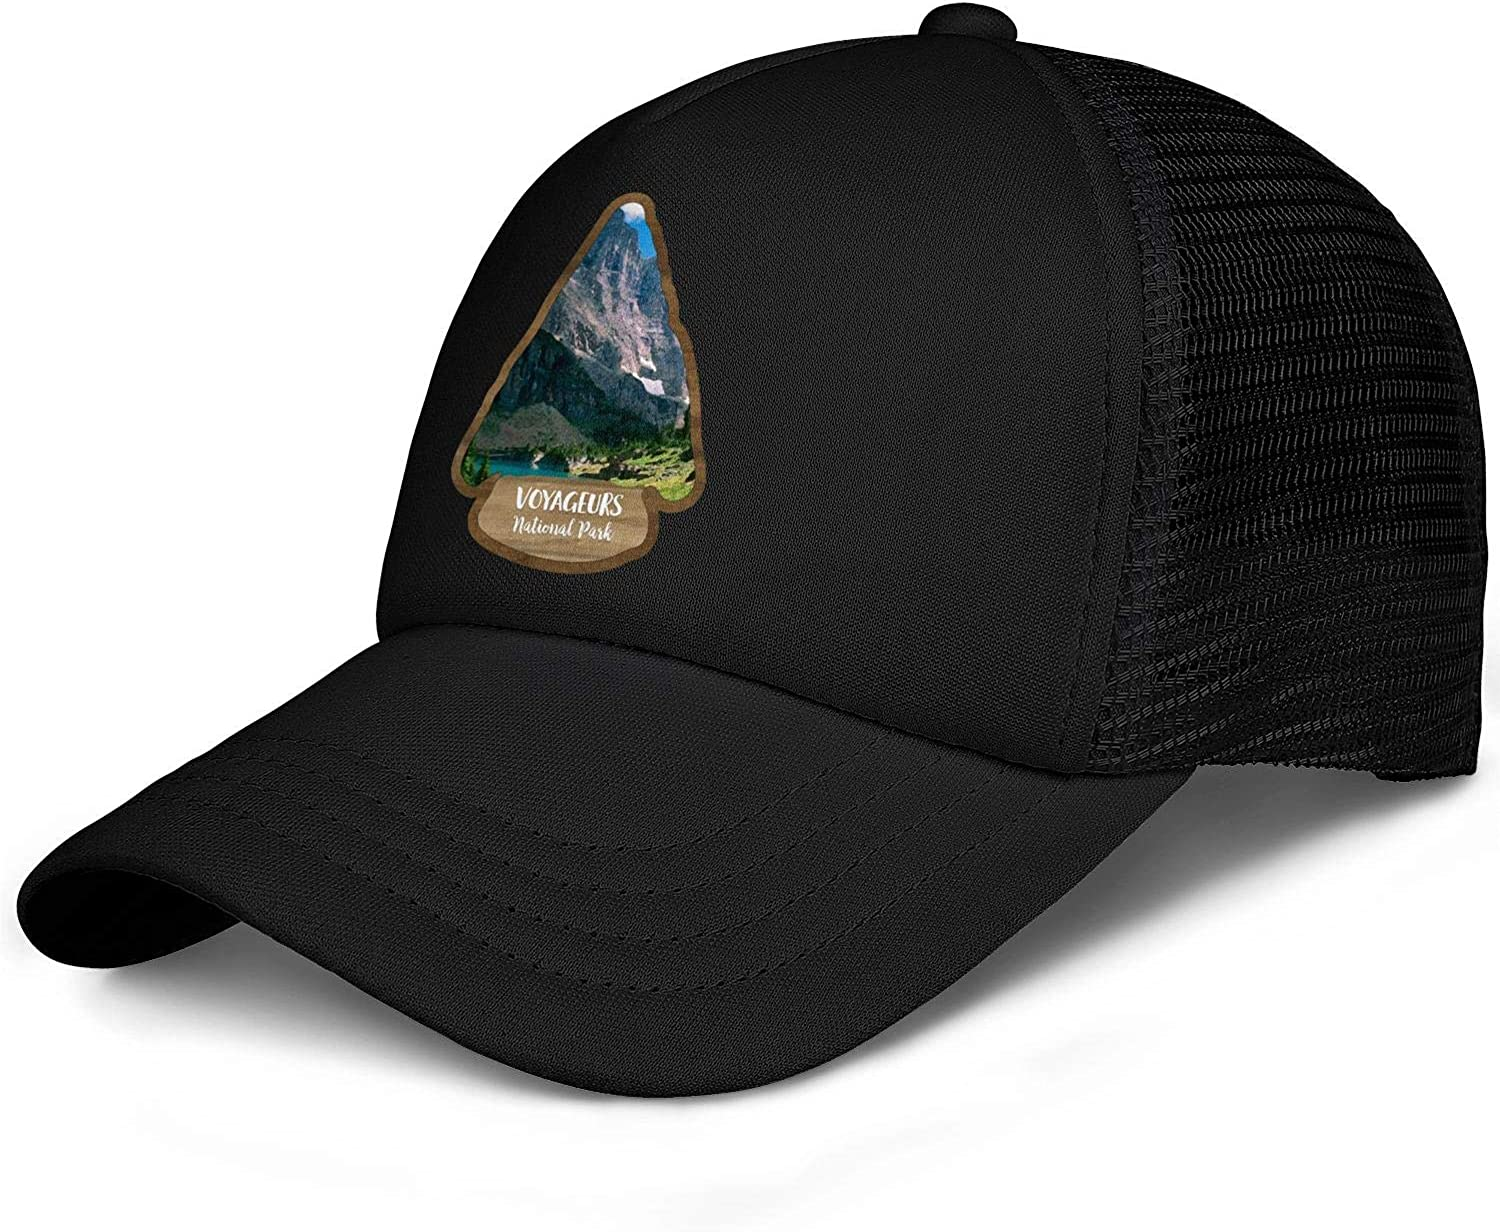 Voyageurs National Park Baseball Hat Mans Woman Adjustable Mesh Sun Flat Caps